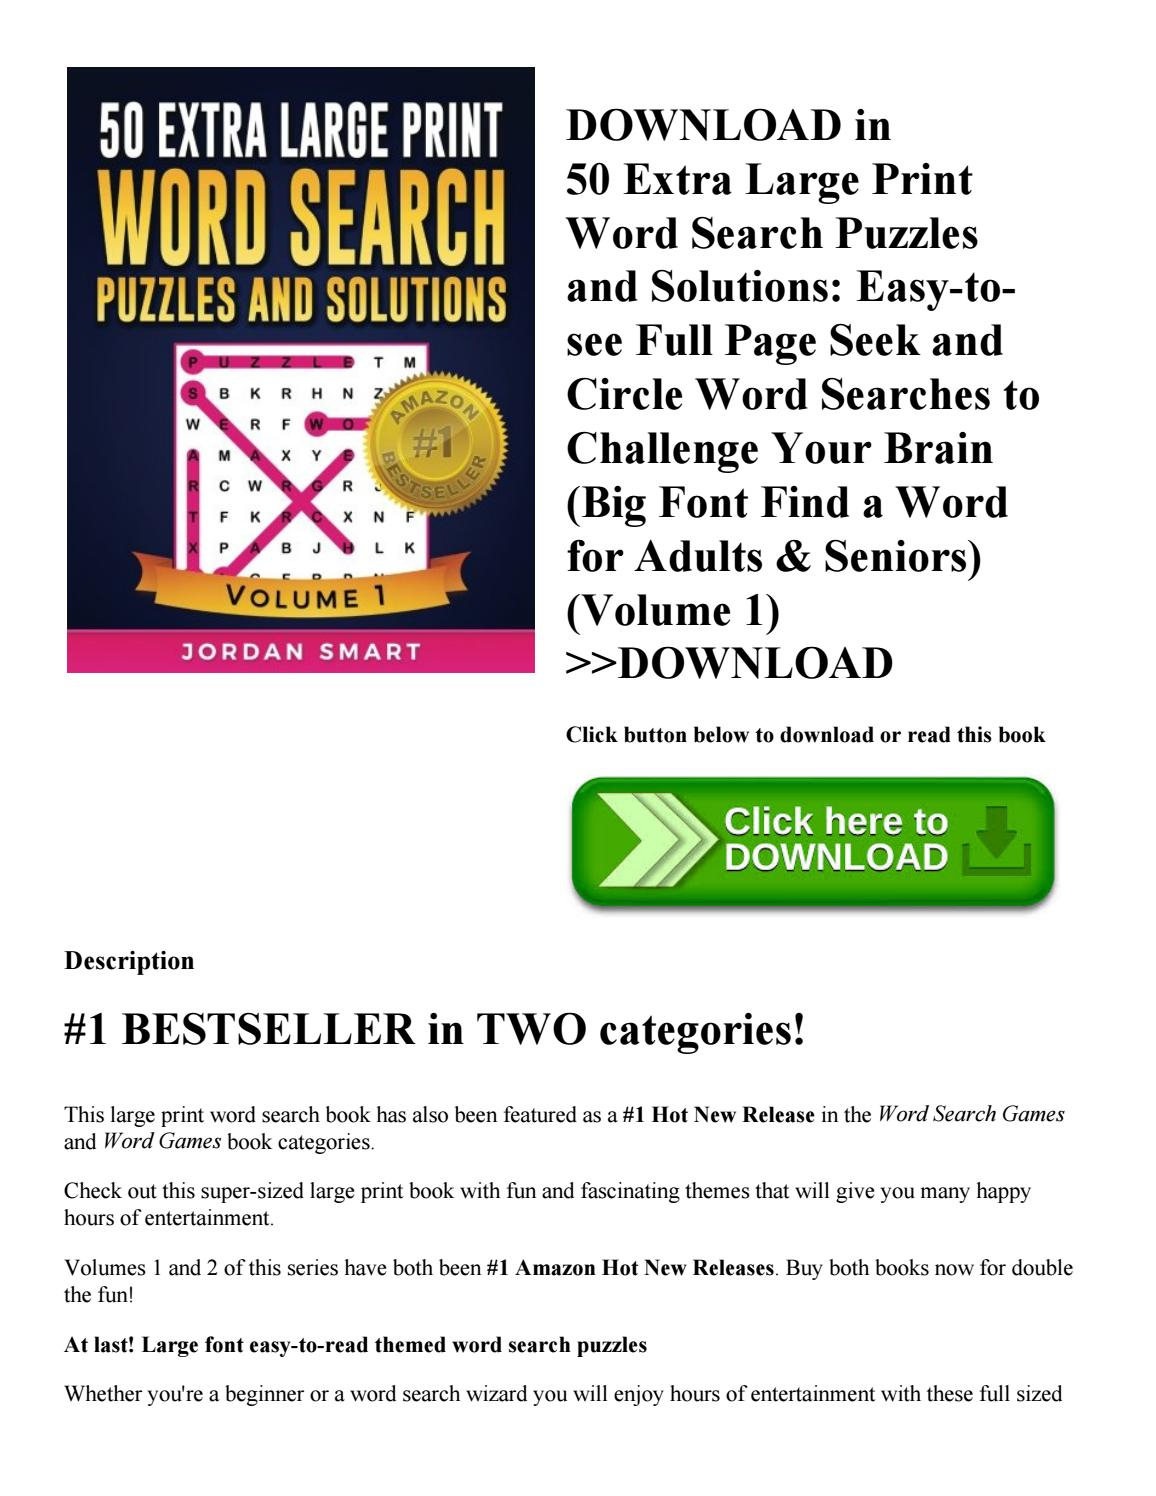 The Most Effortless Large Print Word Search Puzzles Design | Isabella - Large Print Crossword Puzzles Visually Impaired